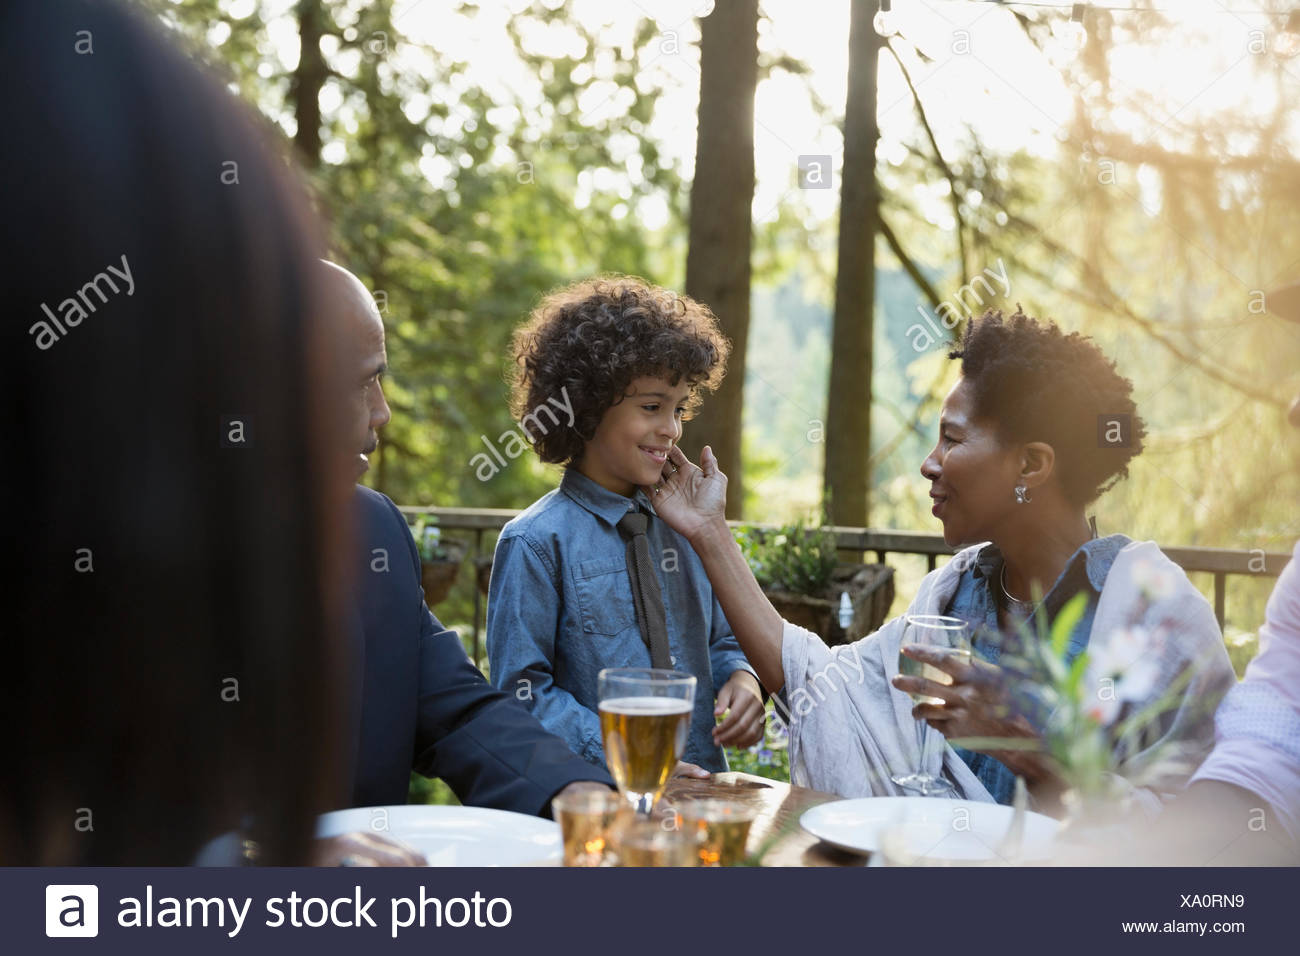 Petit-fils et grand-mère affectueuse at dinner party Photo Stock